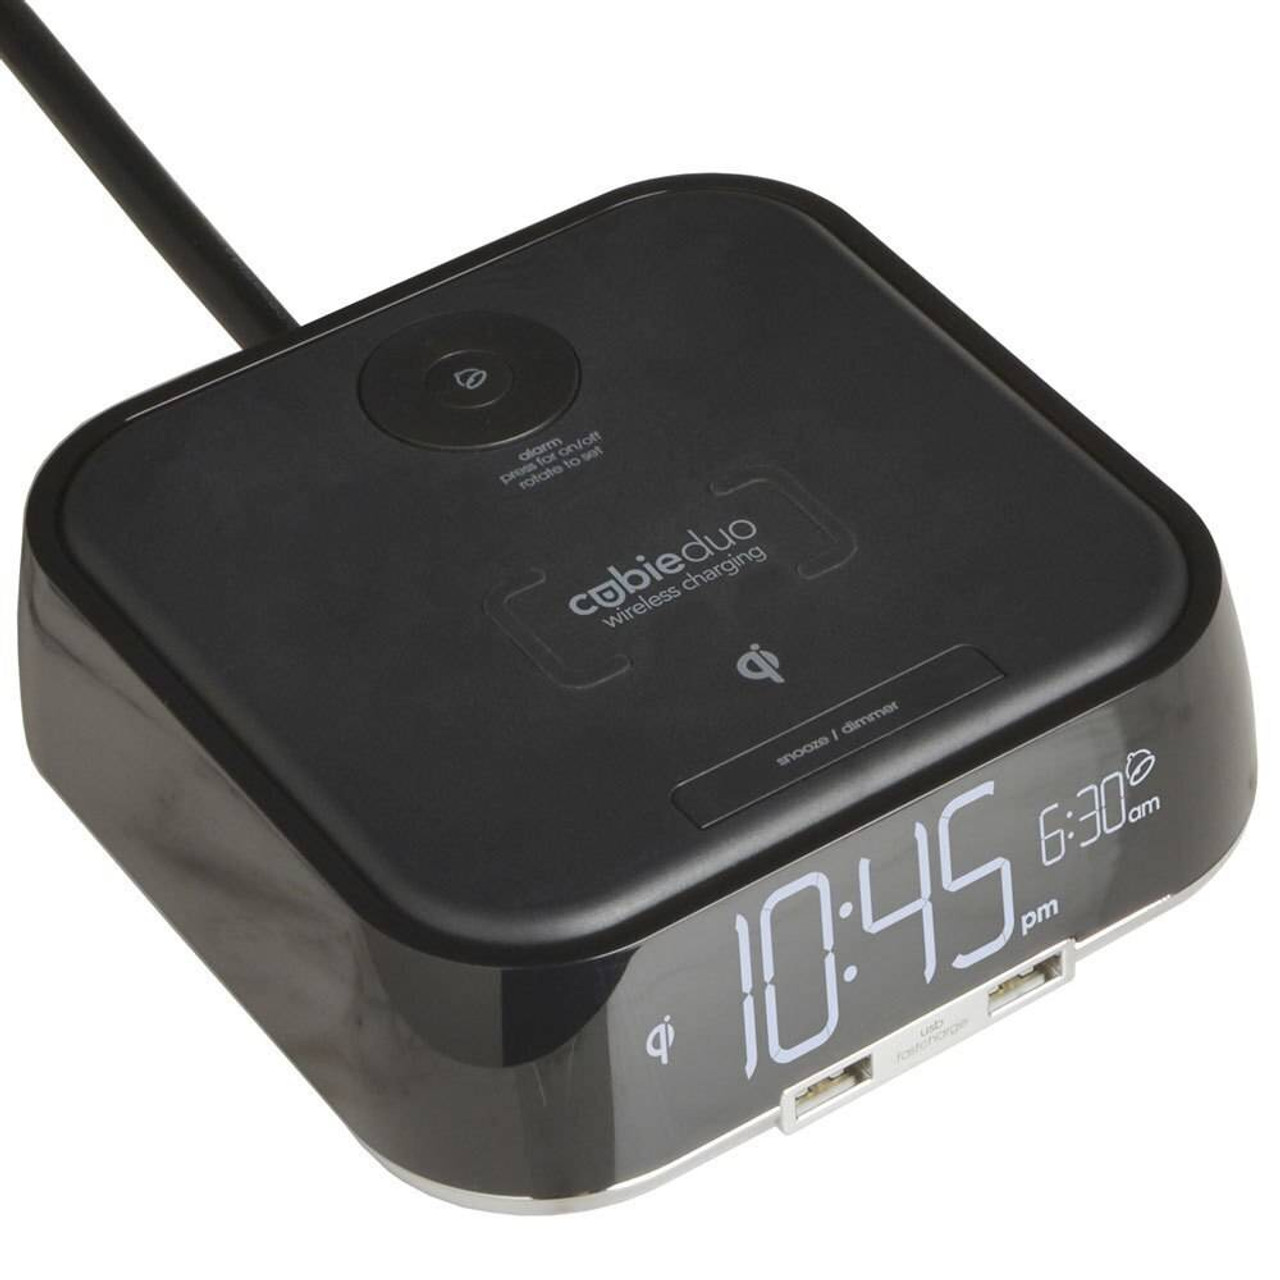 Brandstand BRANDSTAND CUBIEDUO ALARM CLOCK W/ QI WIRELESS CHARGING and 2 USB PORTS BLACK